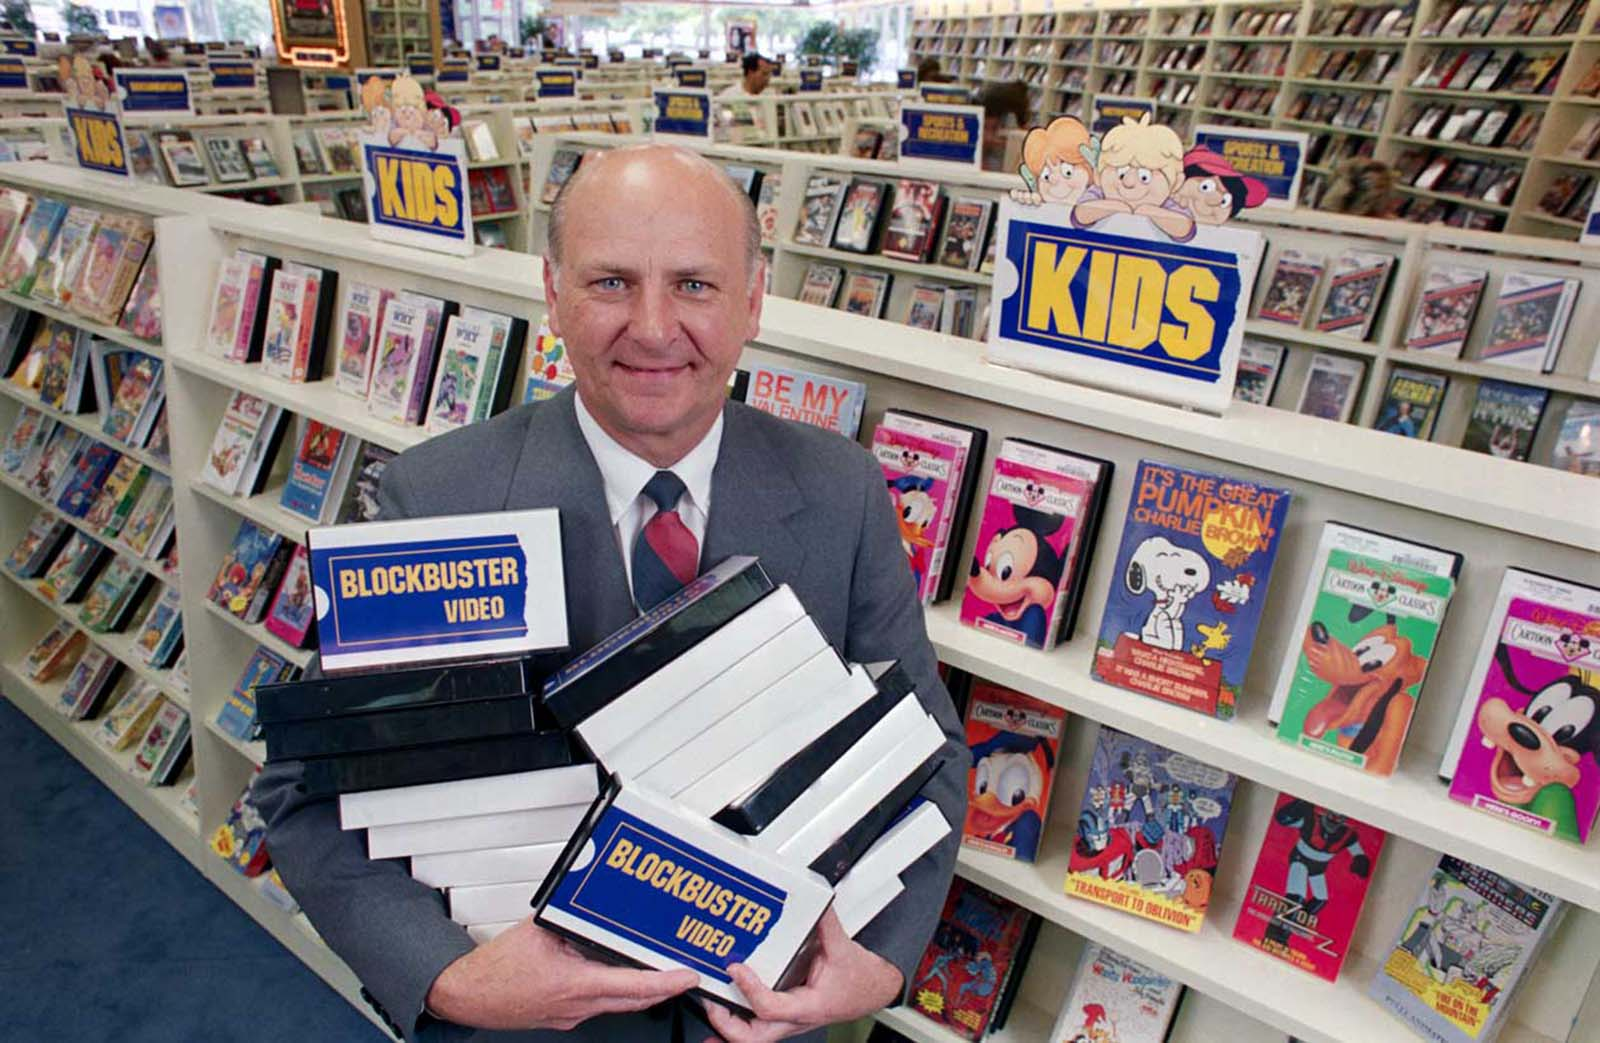 "H. Wayne Huizenga, chairman of Blockbuster Entertainment Corporation. The original caption states he ""wants to build a nationwide chain of video cassette rental stores. During the first quarter of this year, Blockbuster opened or acquired 84 stores and, as of June 30, they operated 235 stores, up from 19 at the end of 1986."""